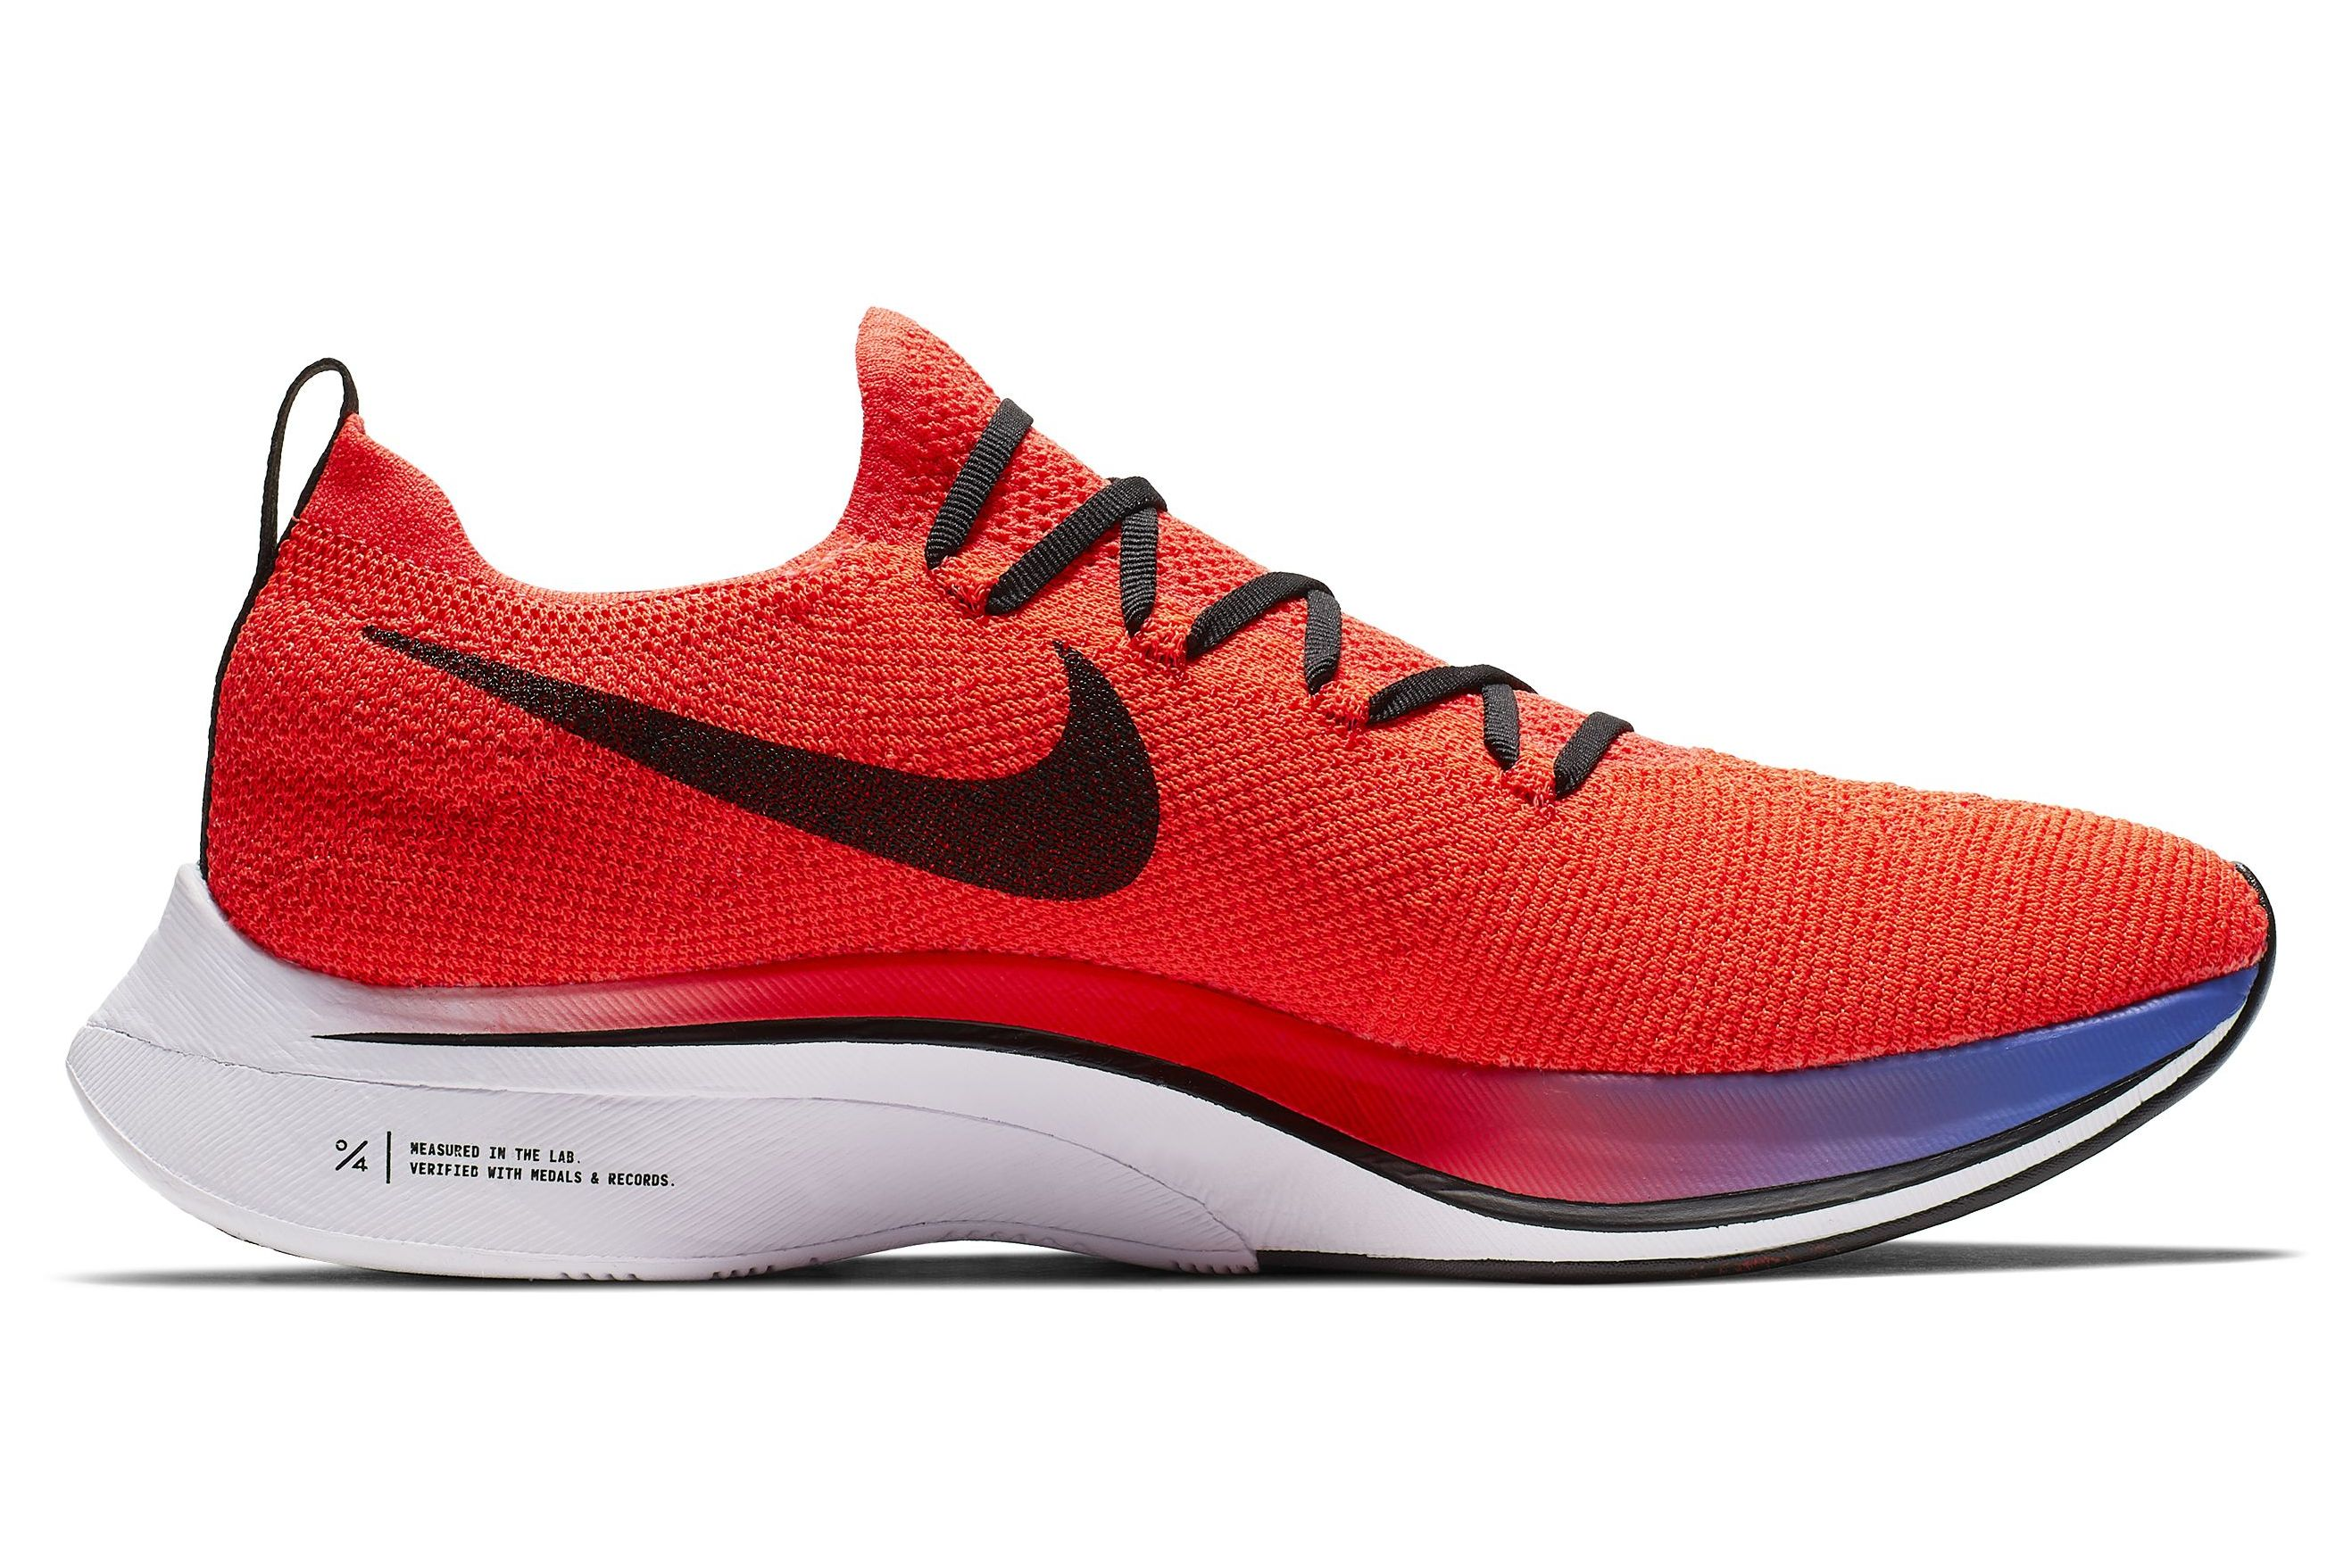 7a8a70c826db 10 Best Nike Shoes For Men